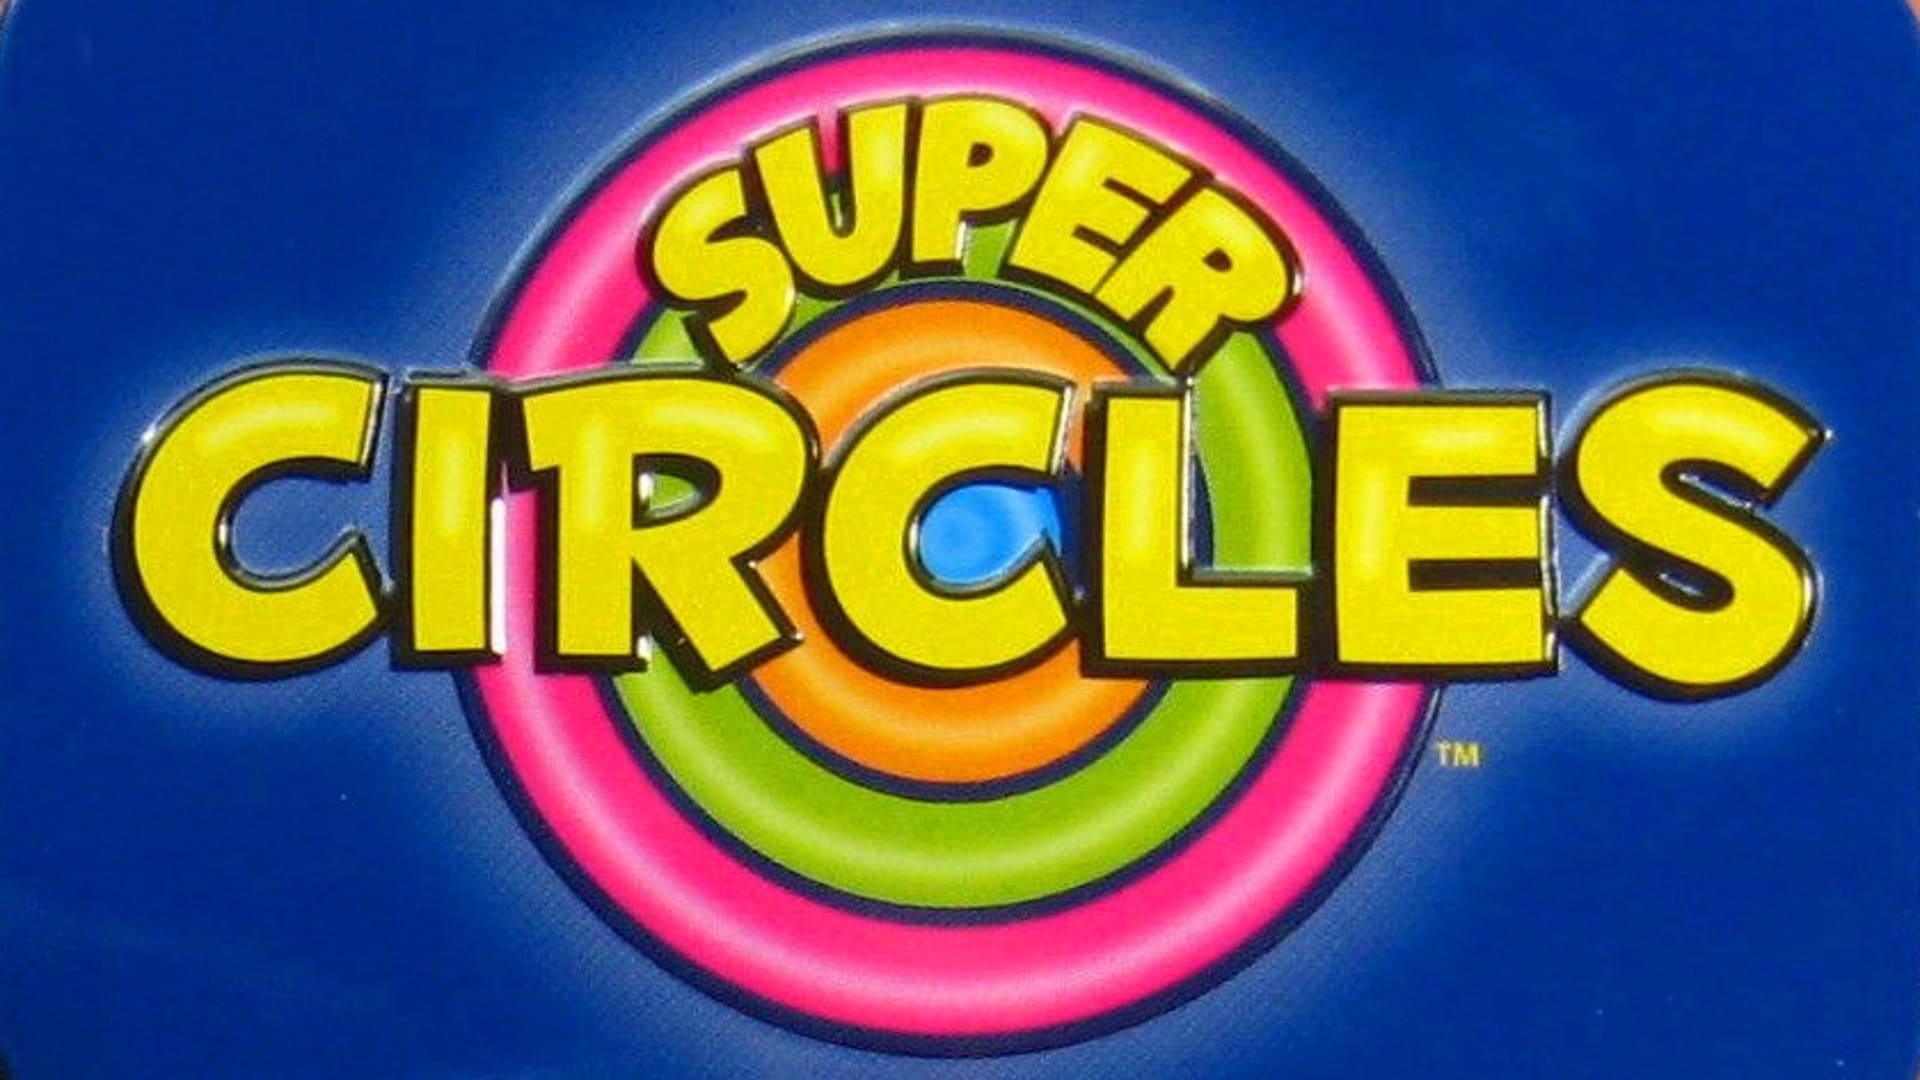 How to play Super Circles?